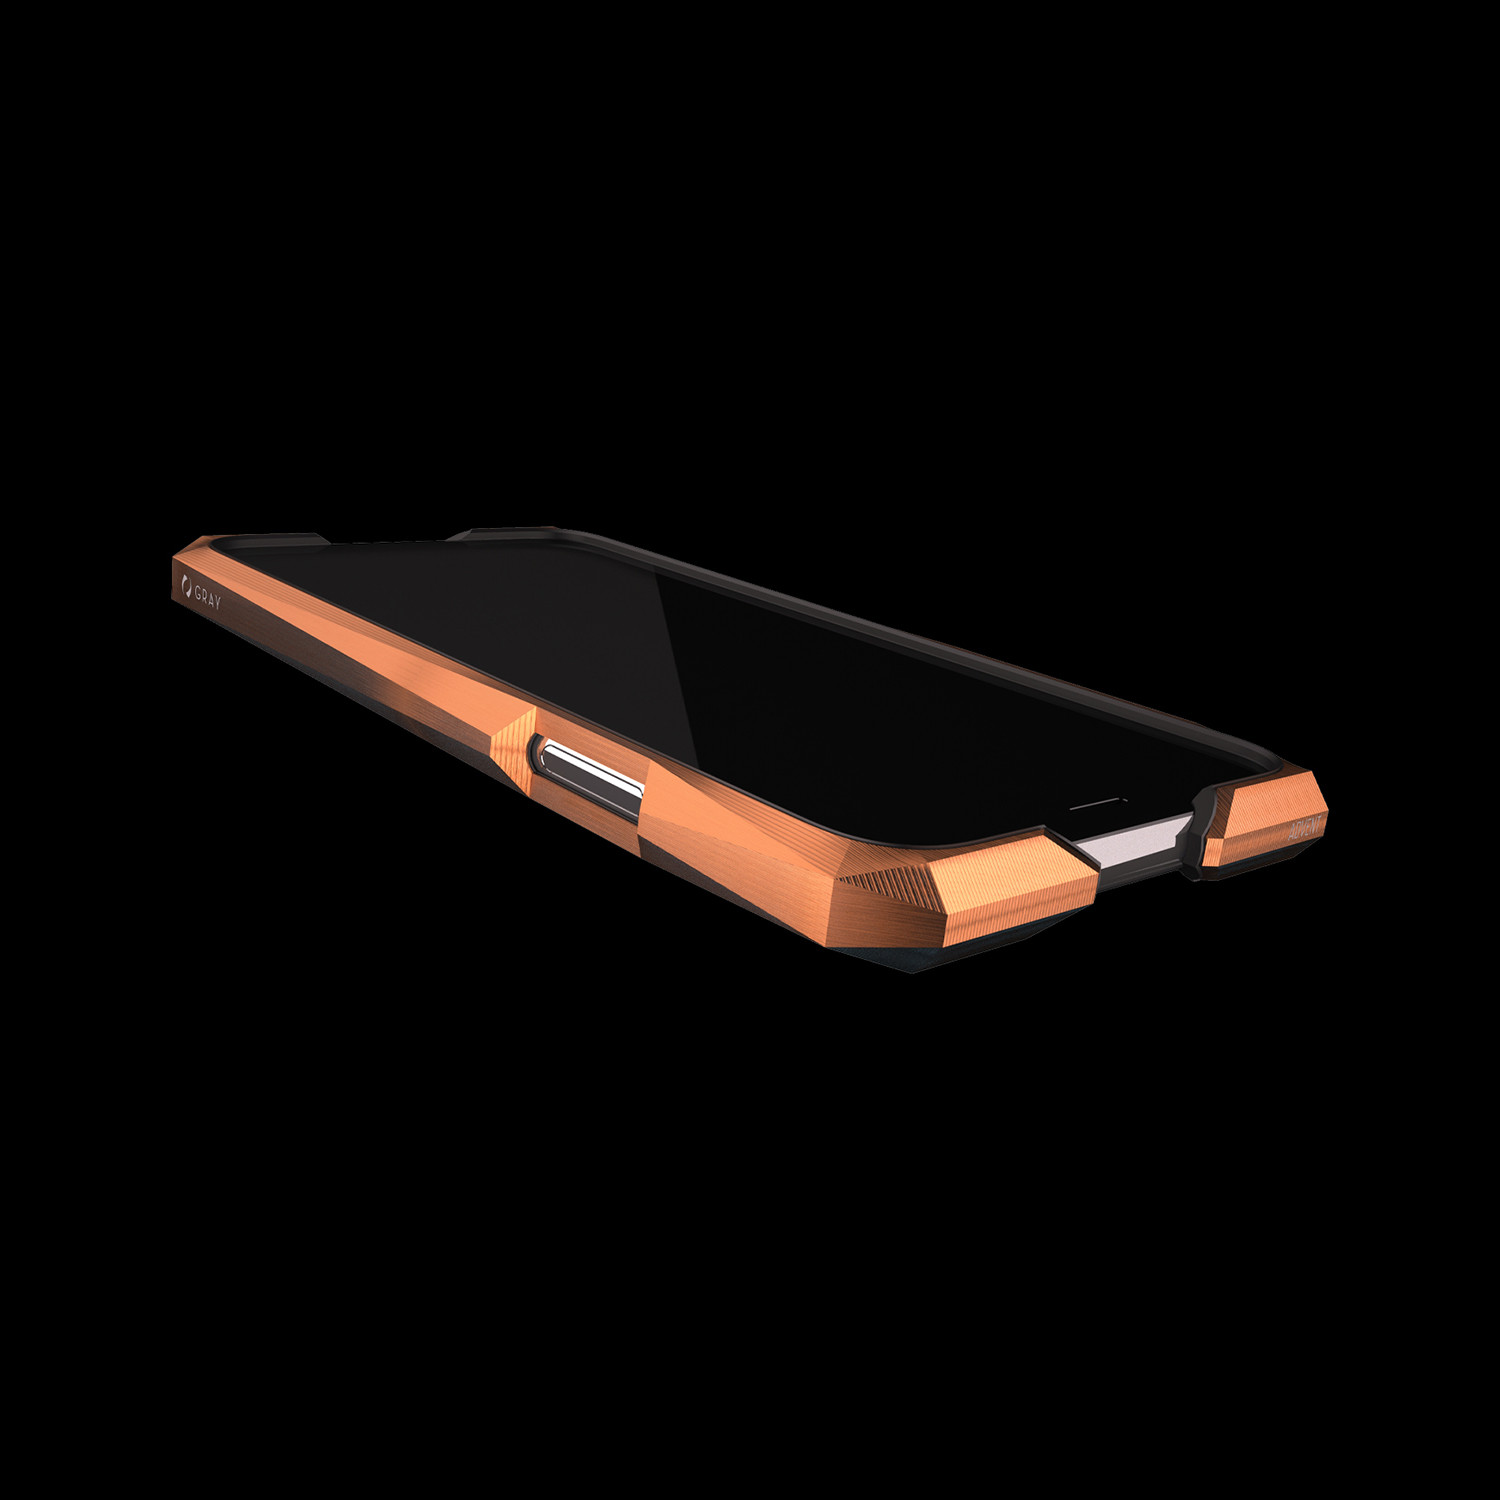 9298adbd26e Advent // Rose Gold (iPhone XS) - GRAY® Singapore - Touch of Modern